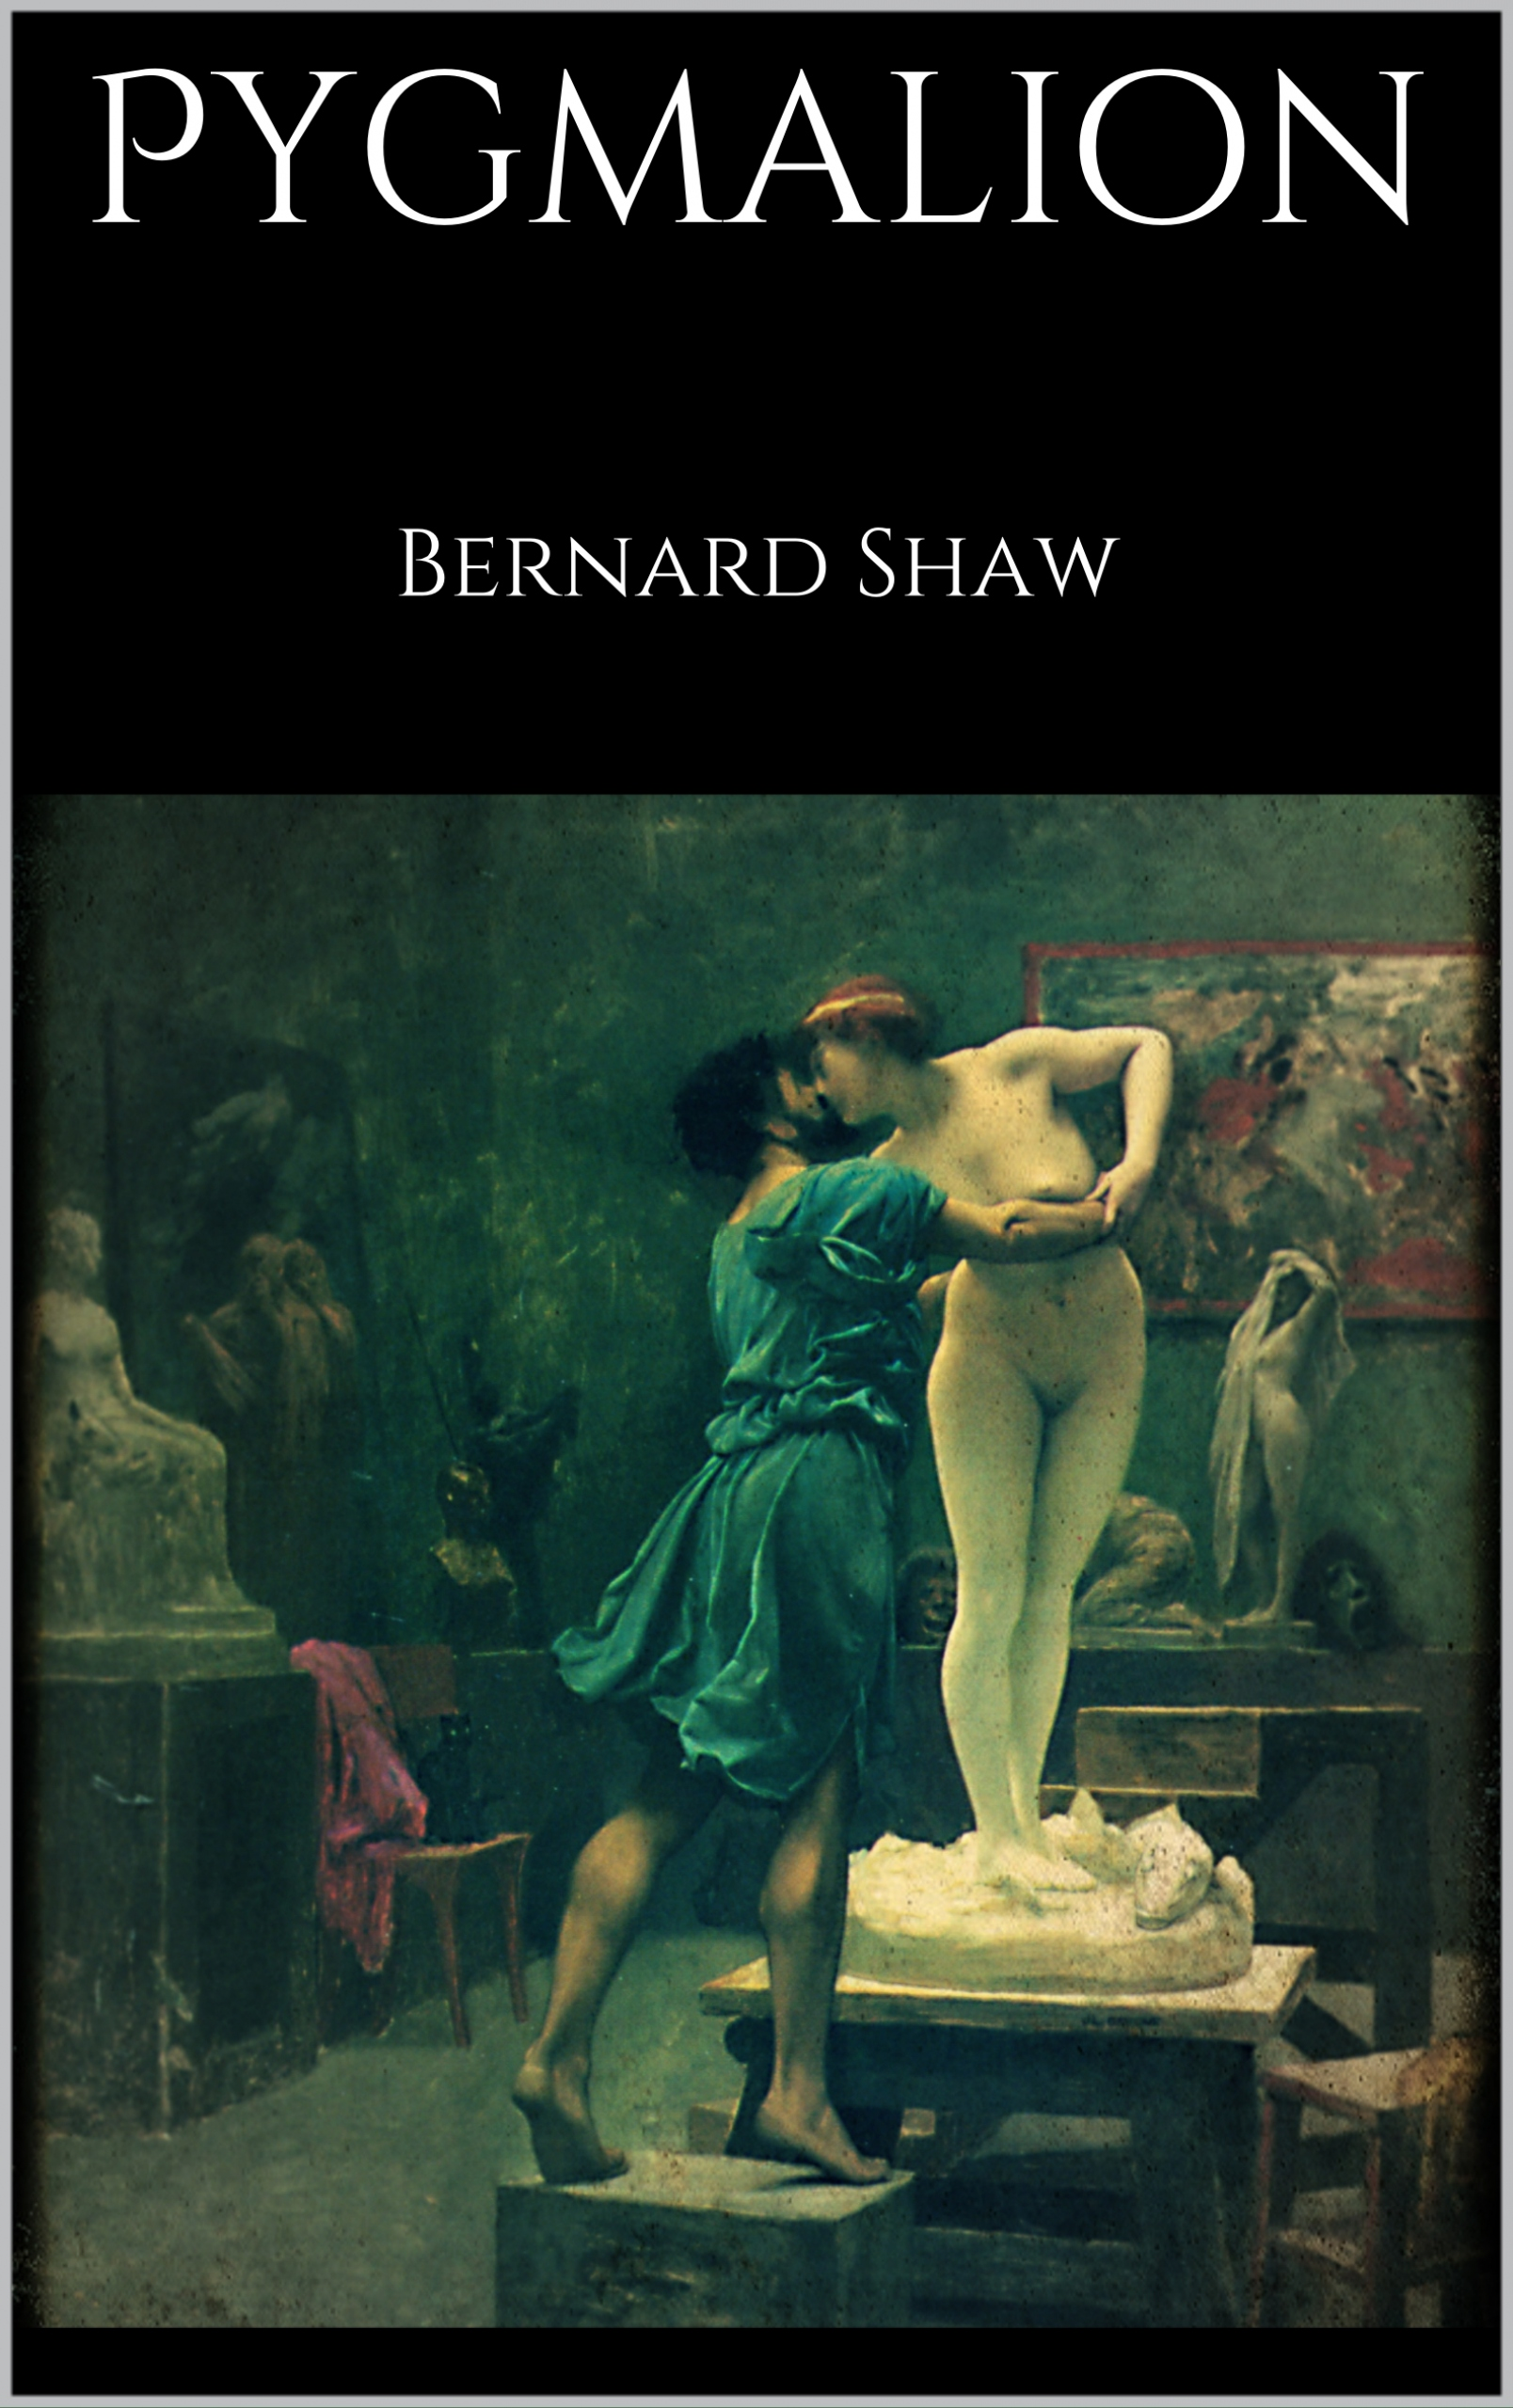 pygmalion bernard shaw Pygmalion is a play by george bernard shaw it tells the story of henry higgins, a professor of phonetics who makes a bet with his friend colonel pickering that he.